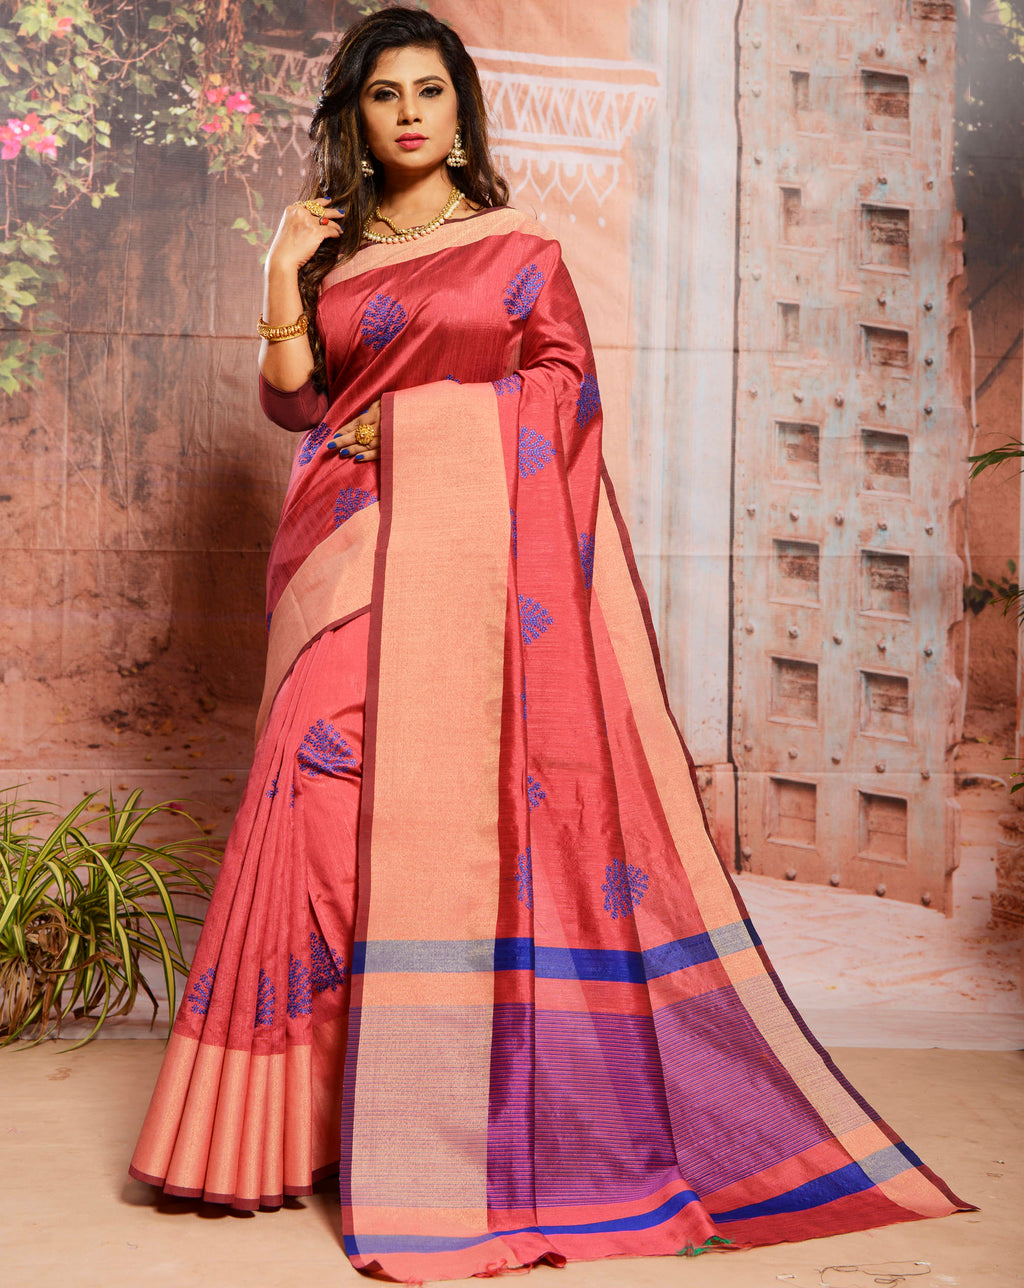 Gajjariya Color Cotton Silk Elegant Function Wear Sarees NYF-7357